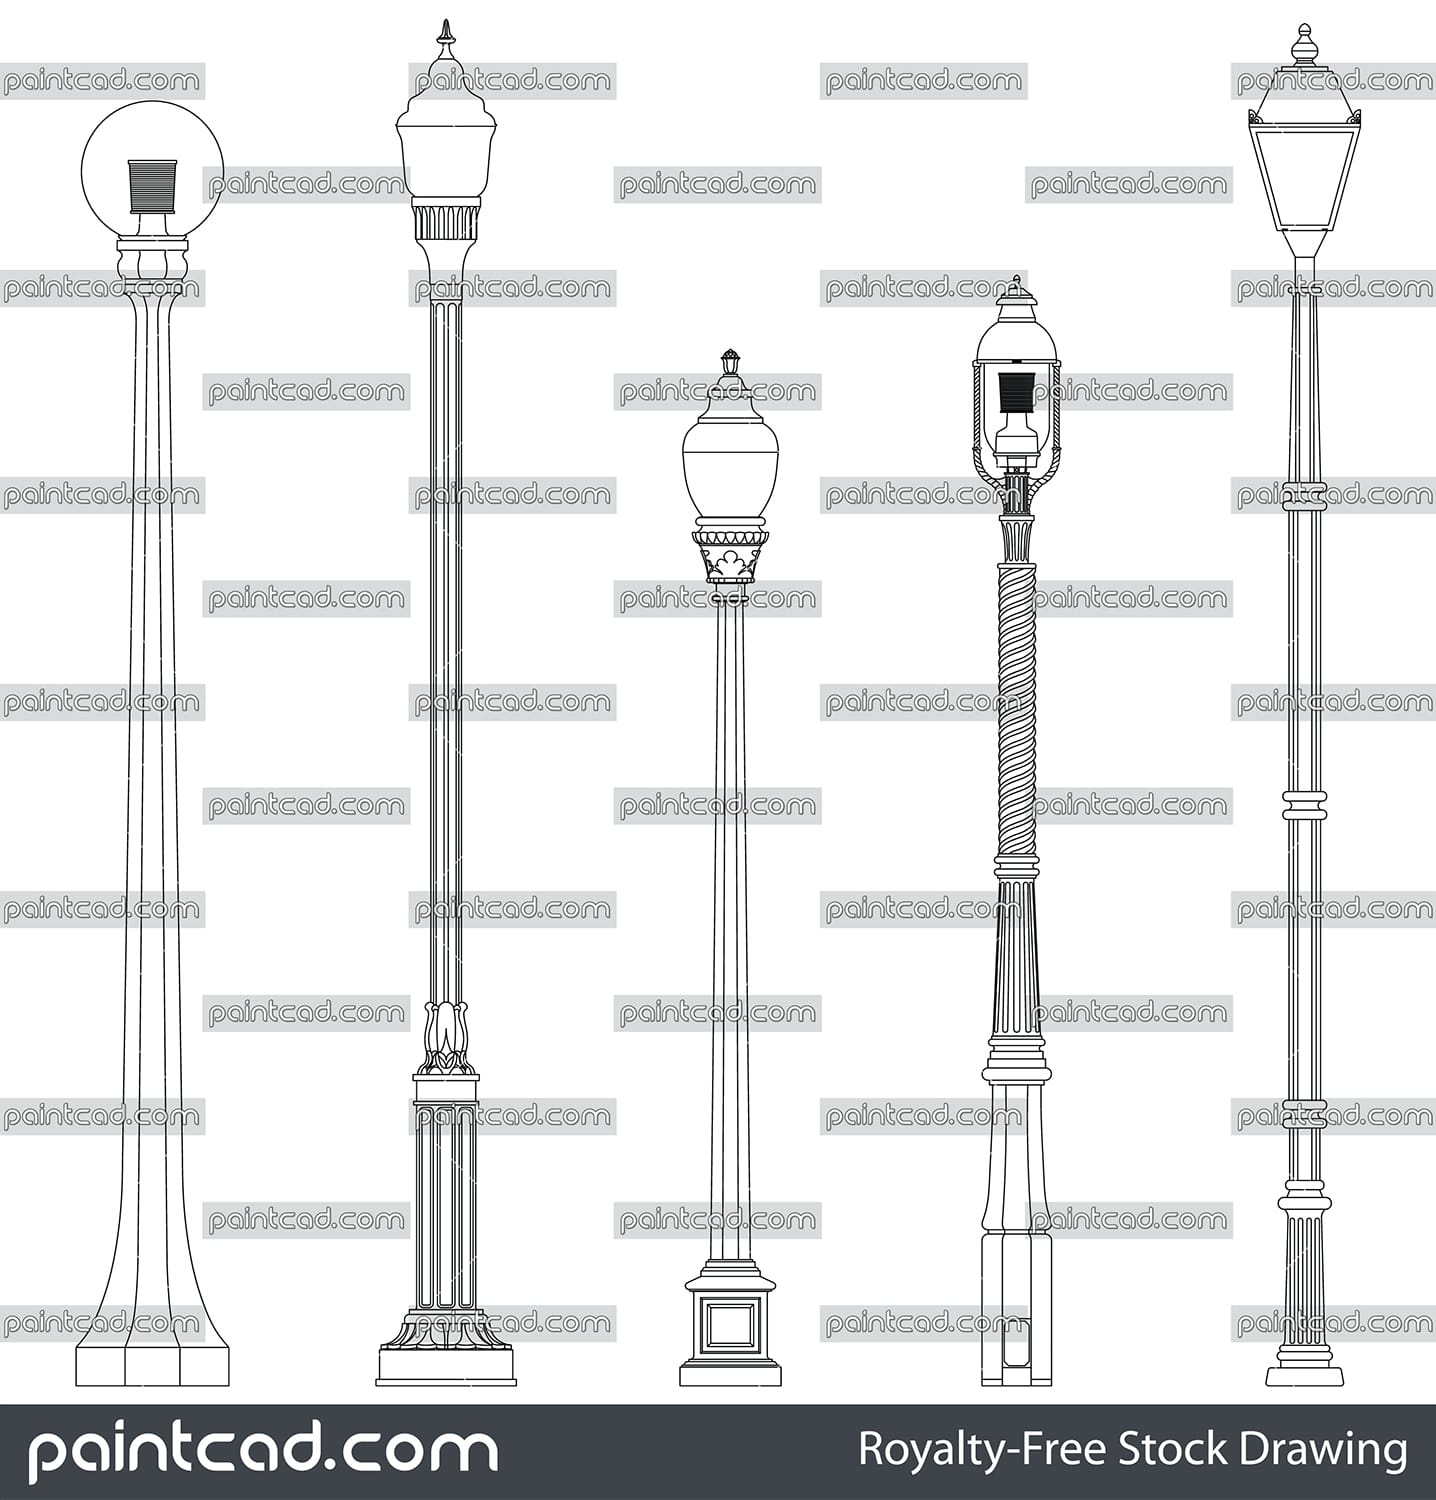 Drawing with garden iron lamps and different pillar types - vector illustration